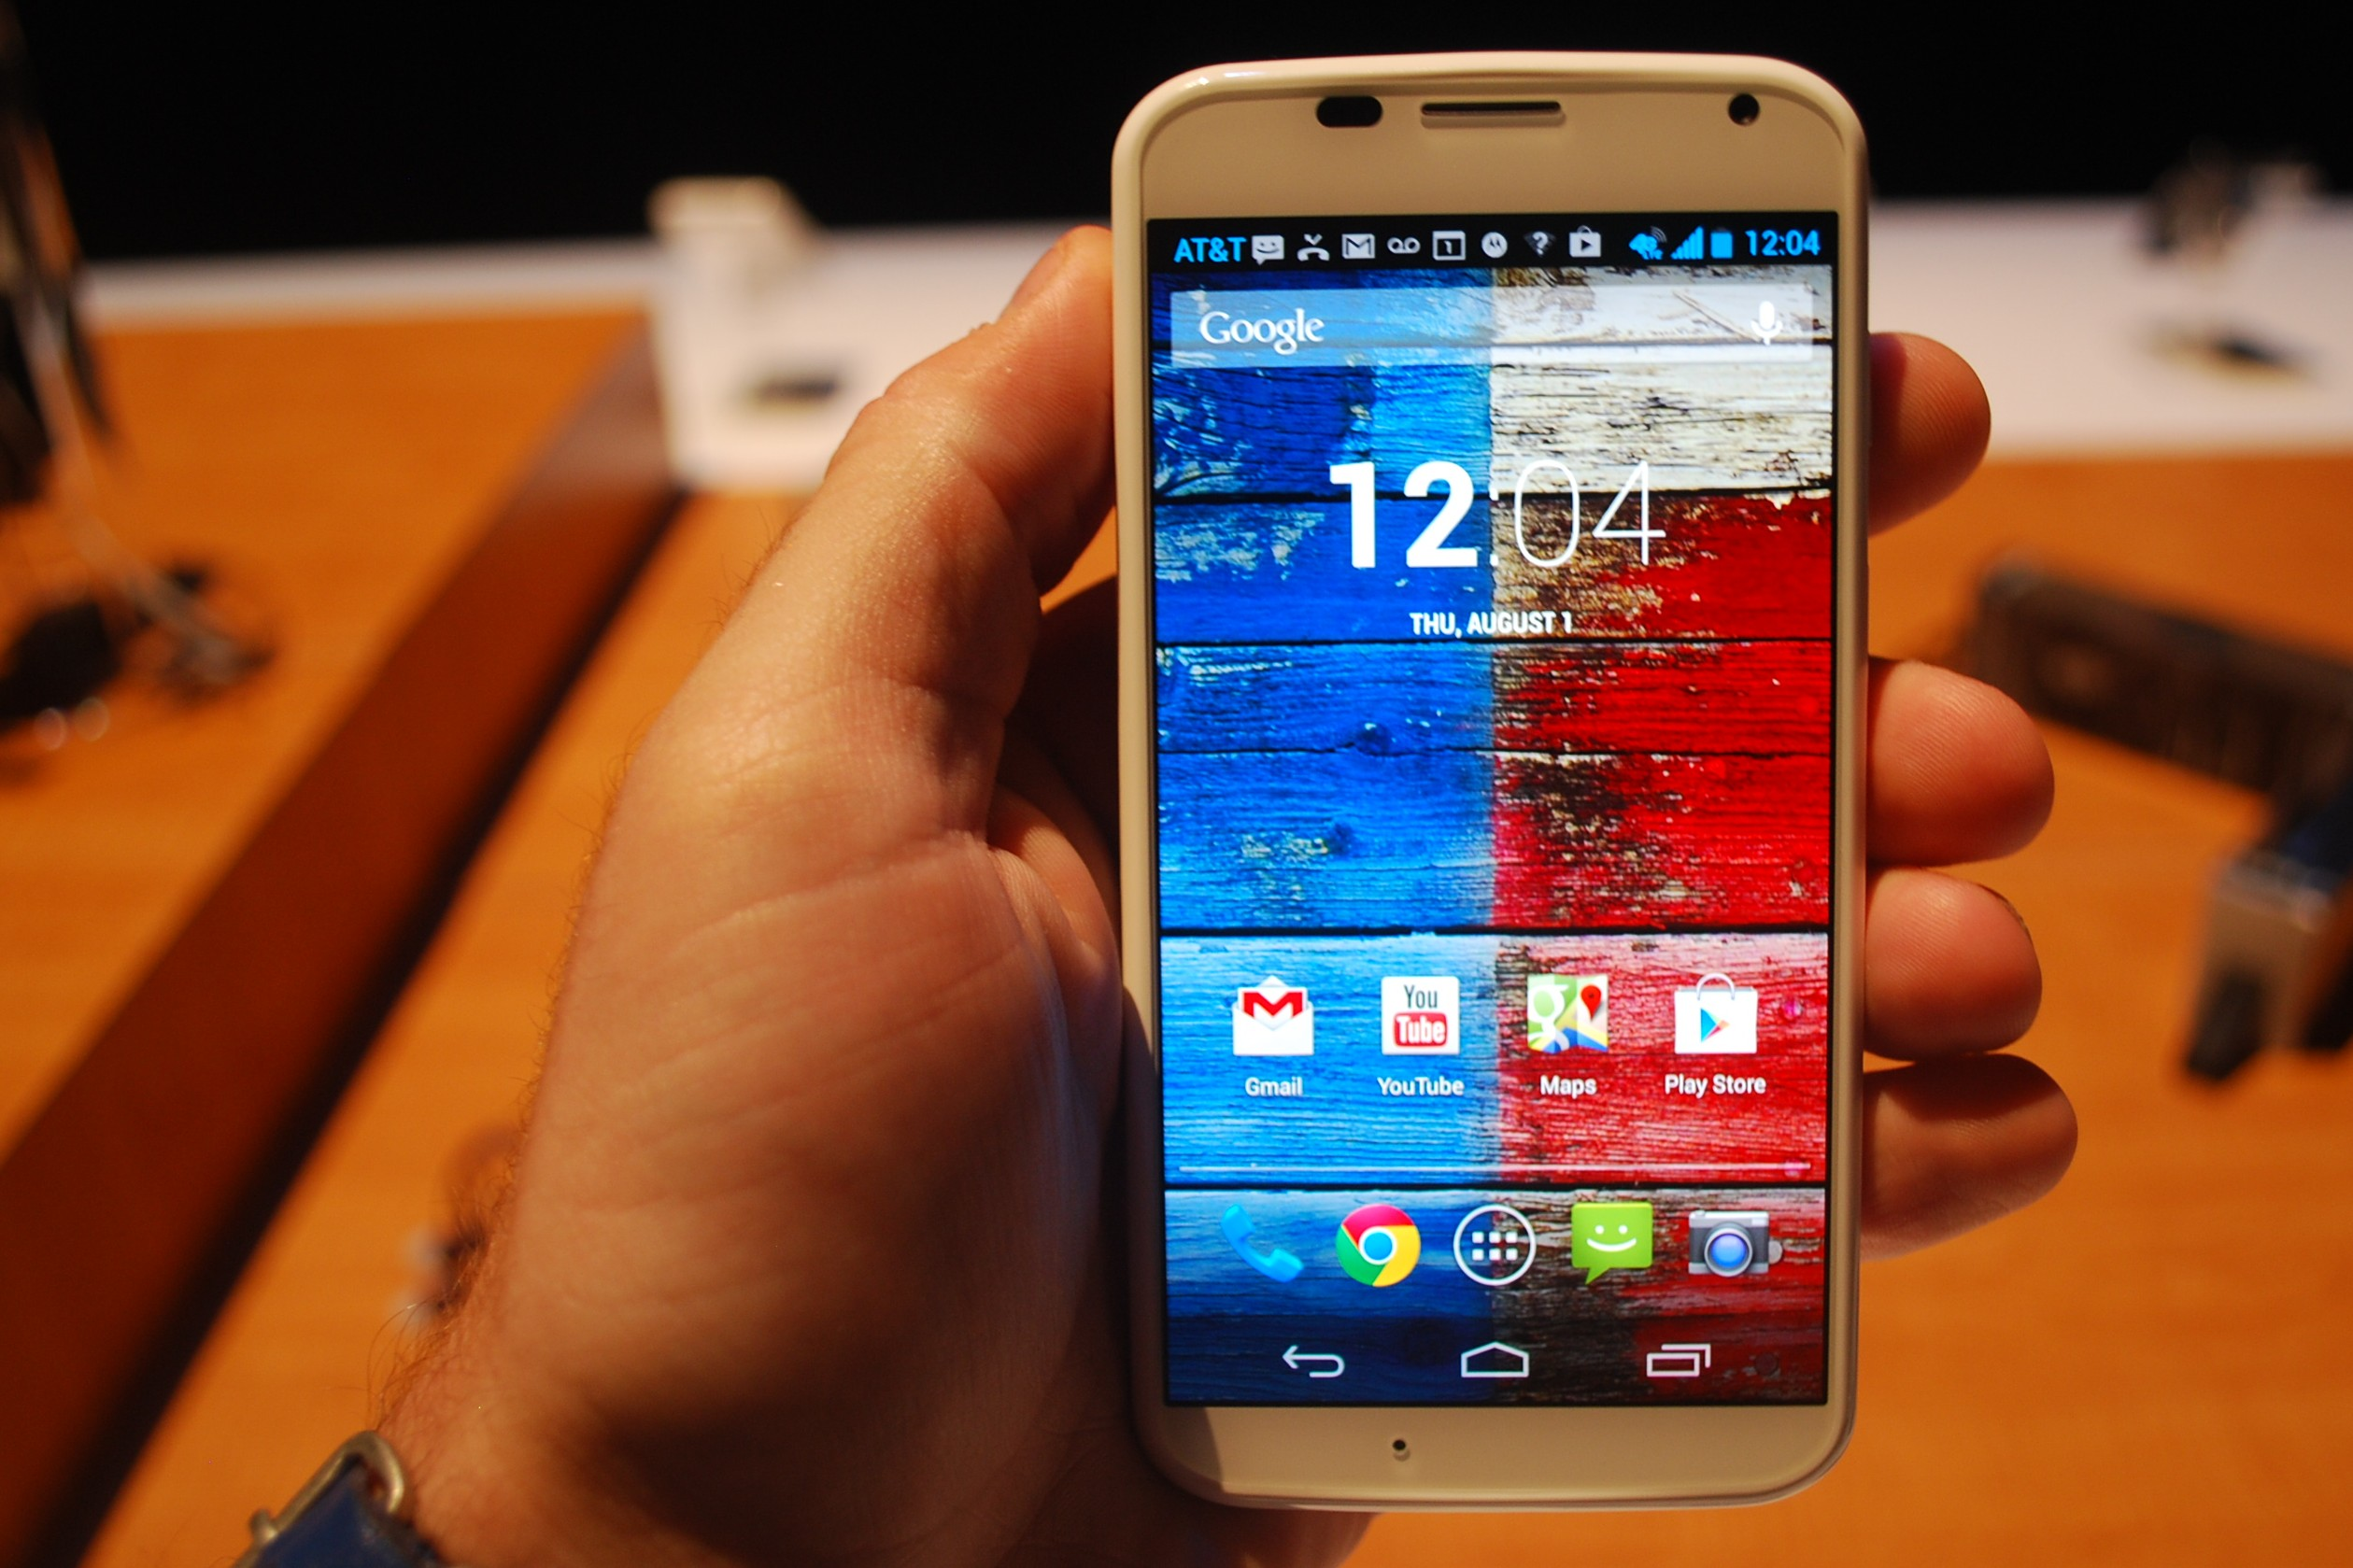 Motorola Moto X 2013 Android 5.1 Lollipop